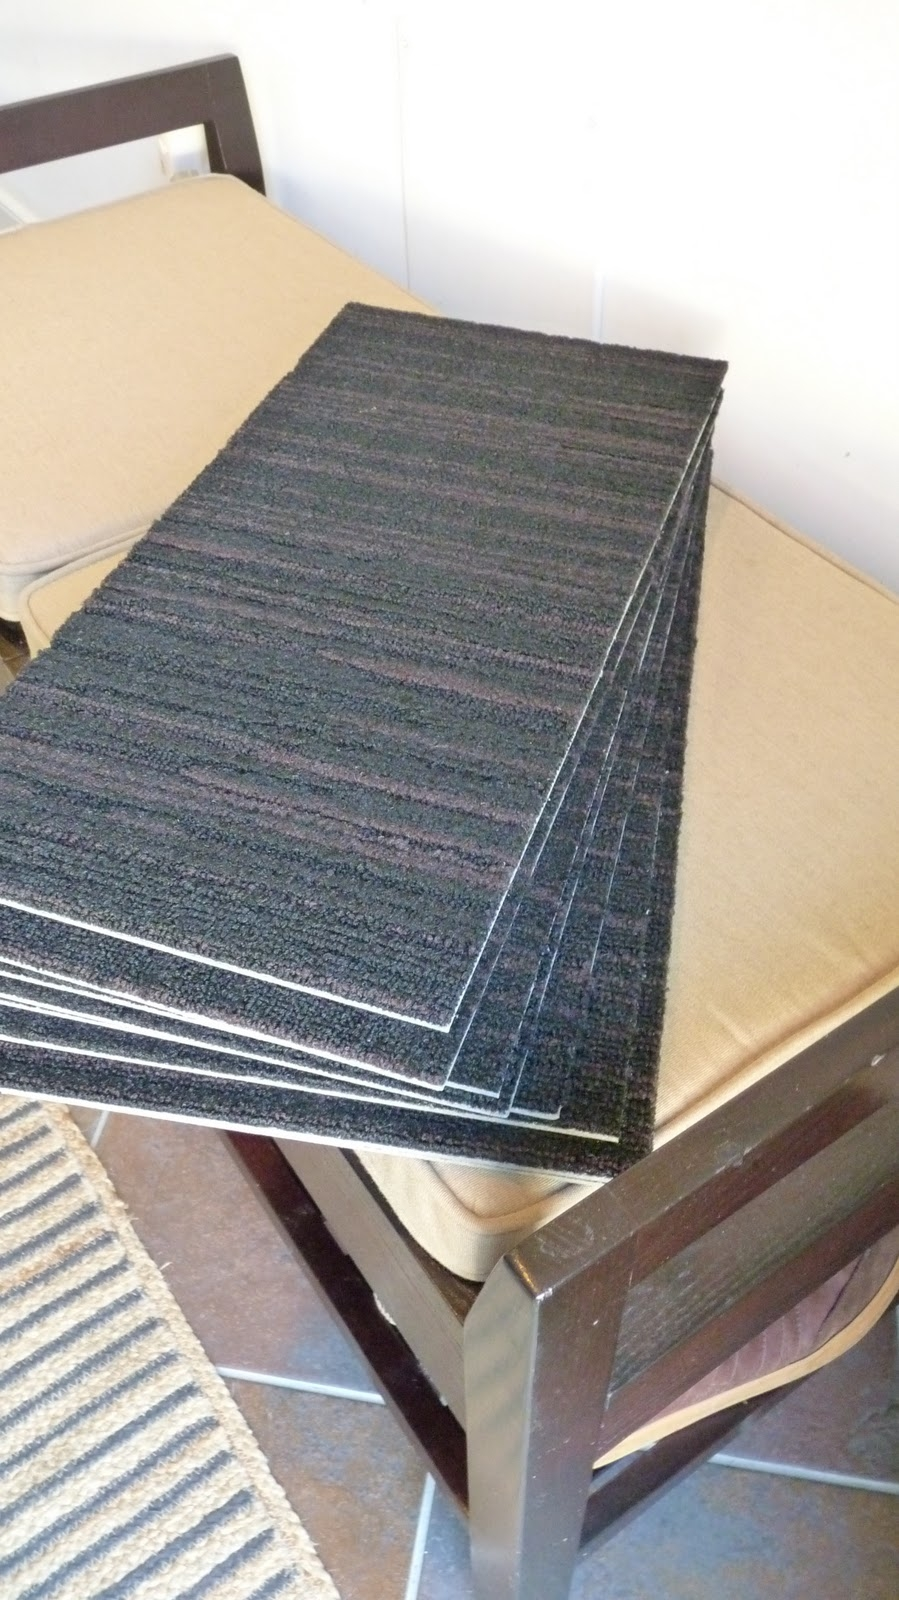 Disabella Design Diy Carpet Stair Treads Within Stair Tread Carpet Tiles (#5 of 20)